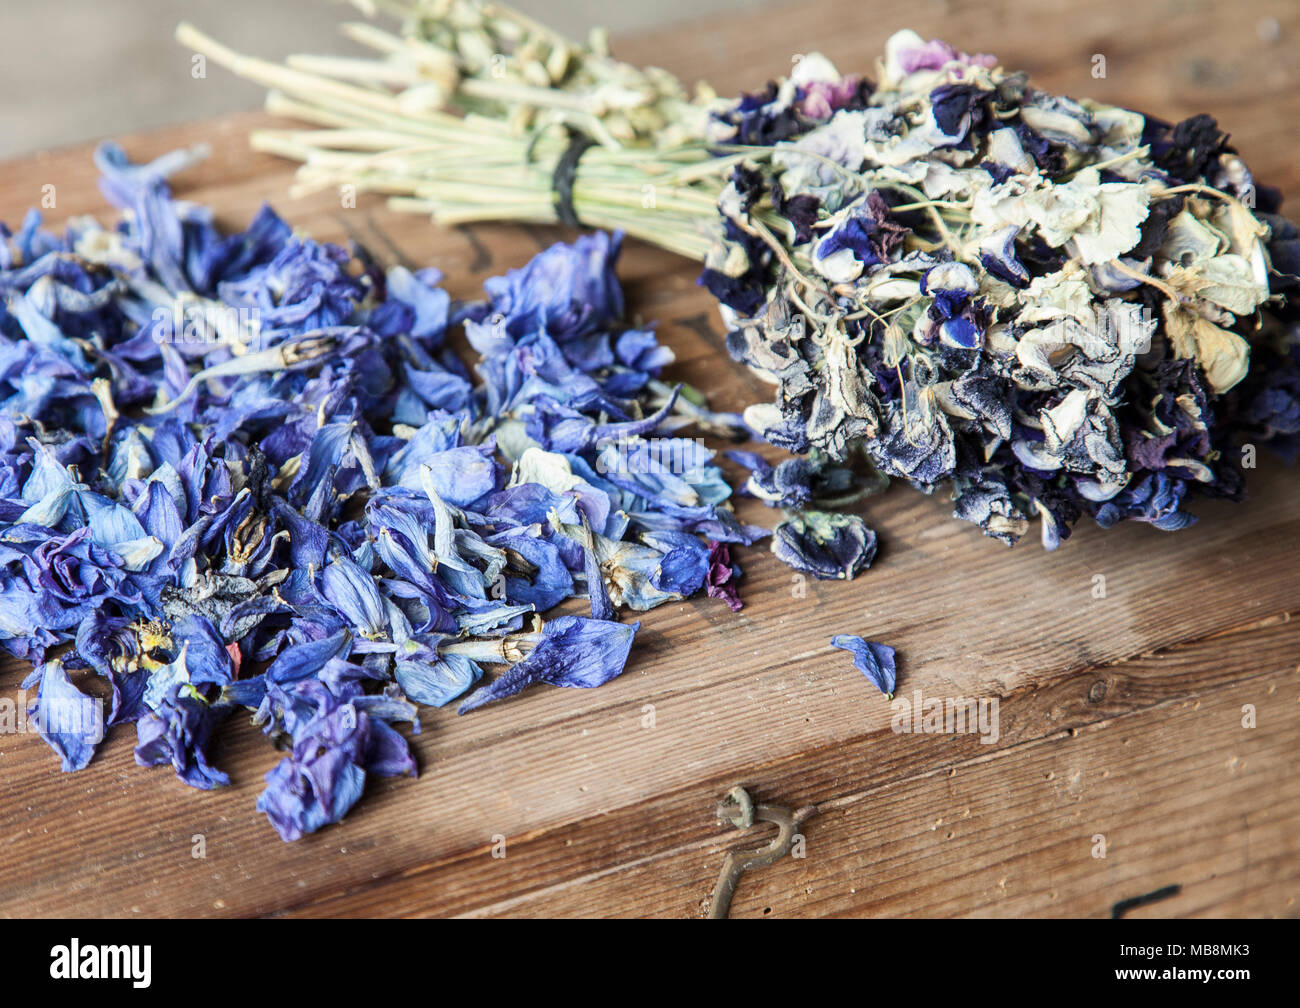 Dried Flower Bouquet On Wooden Box Stock Photo Alamy